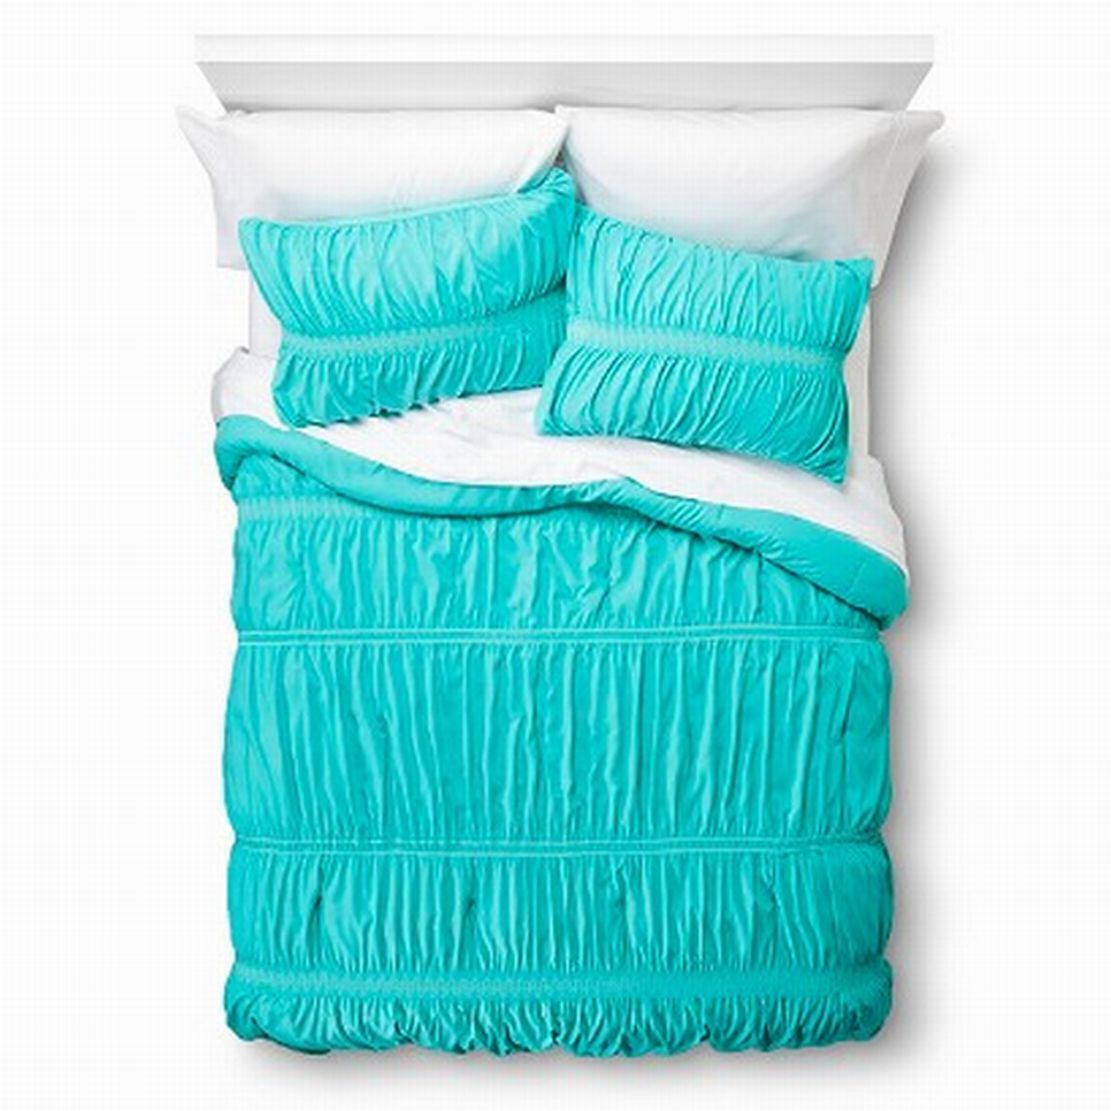 Xhilaration Full Queen Turquoise Blue Sheared Ruched Comforter & Shams Set